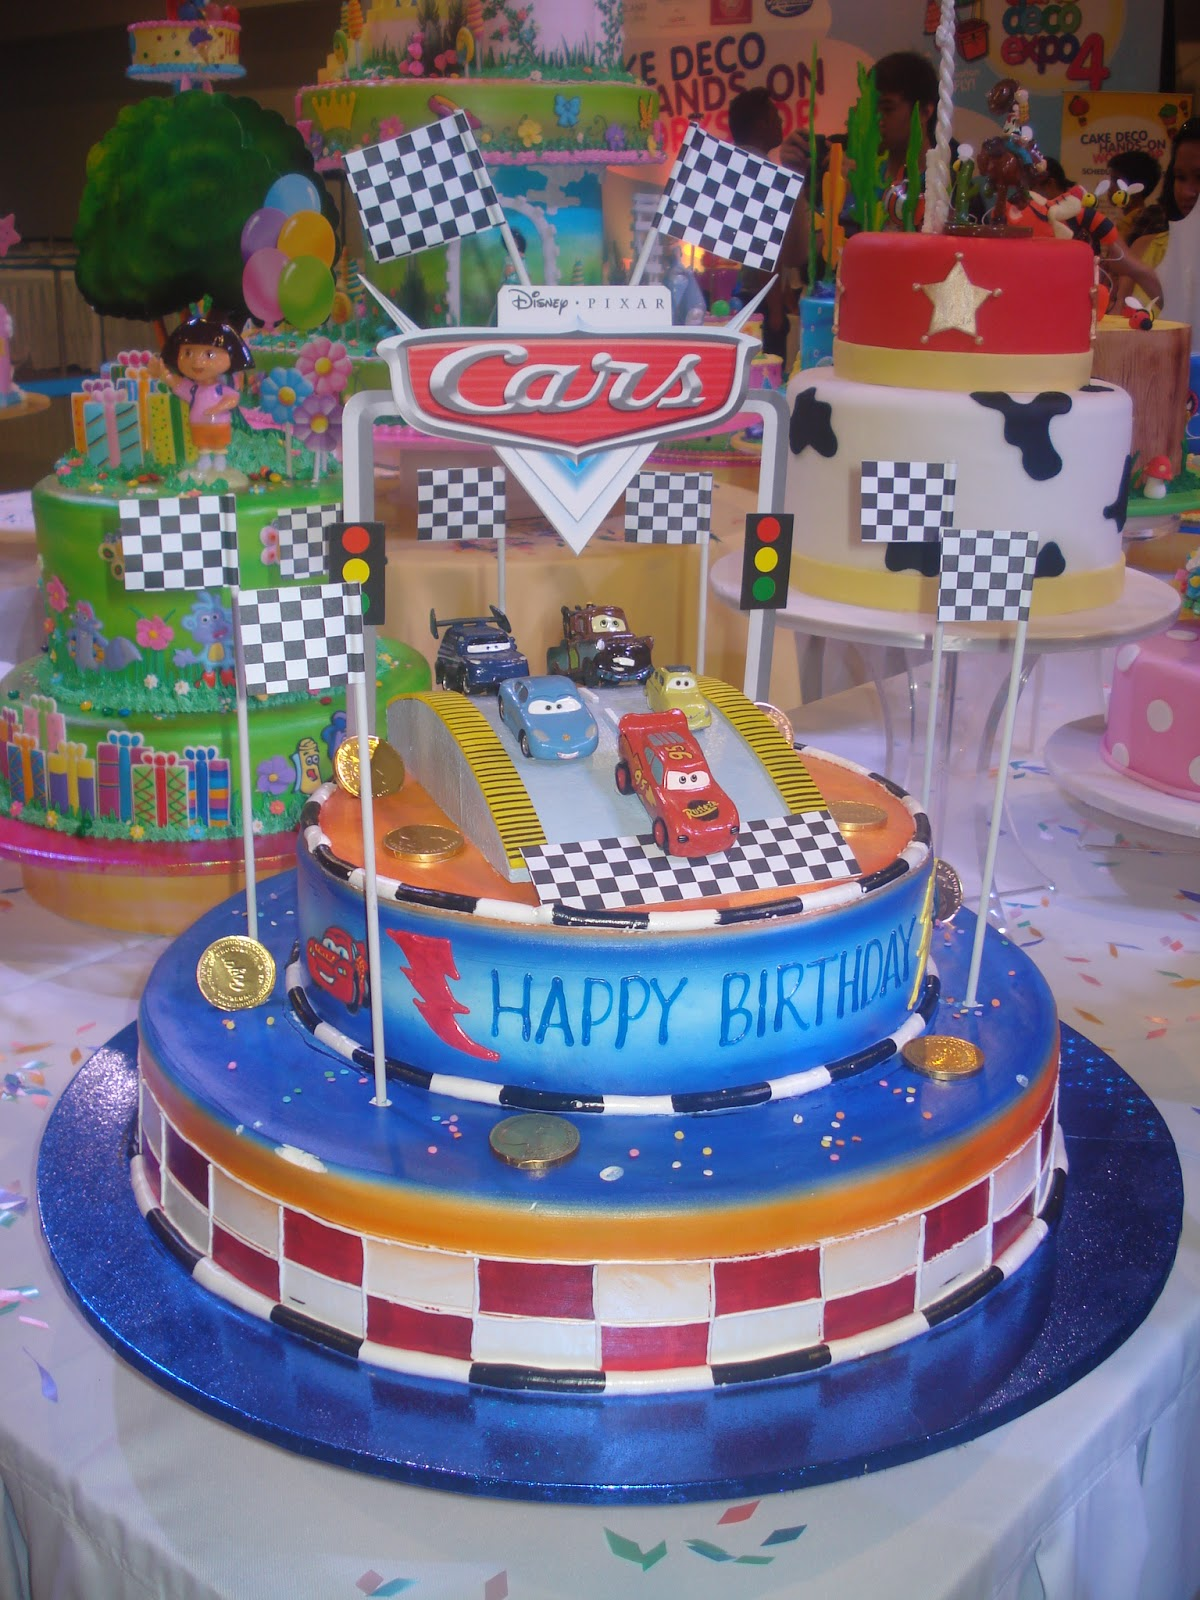 Goldilocks Cake Design For Christening : Goldilocks 4th Cake Deco Expo Roller Coaster Ride